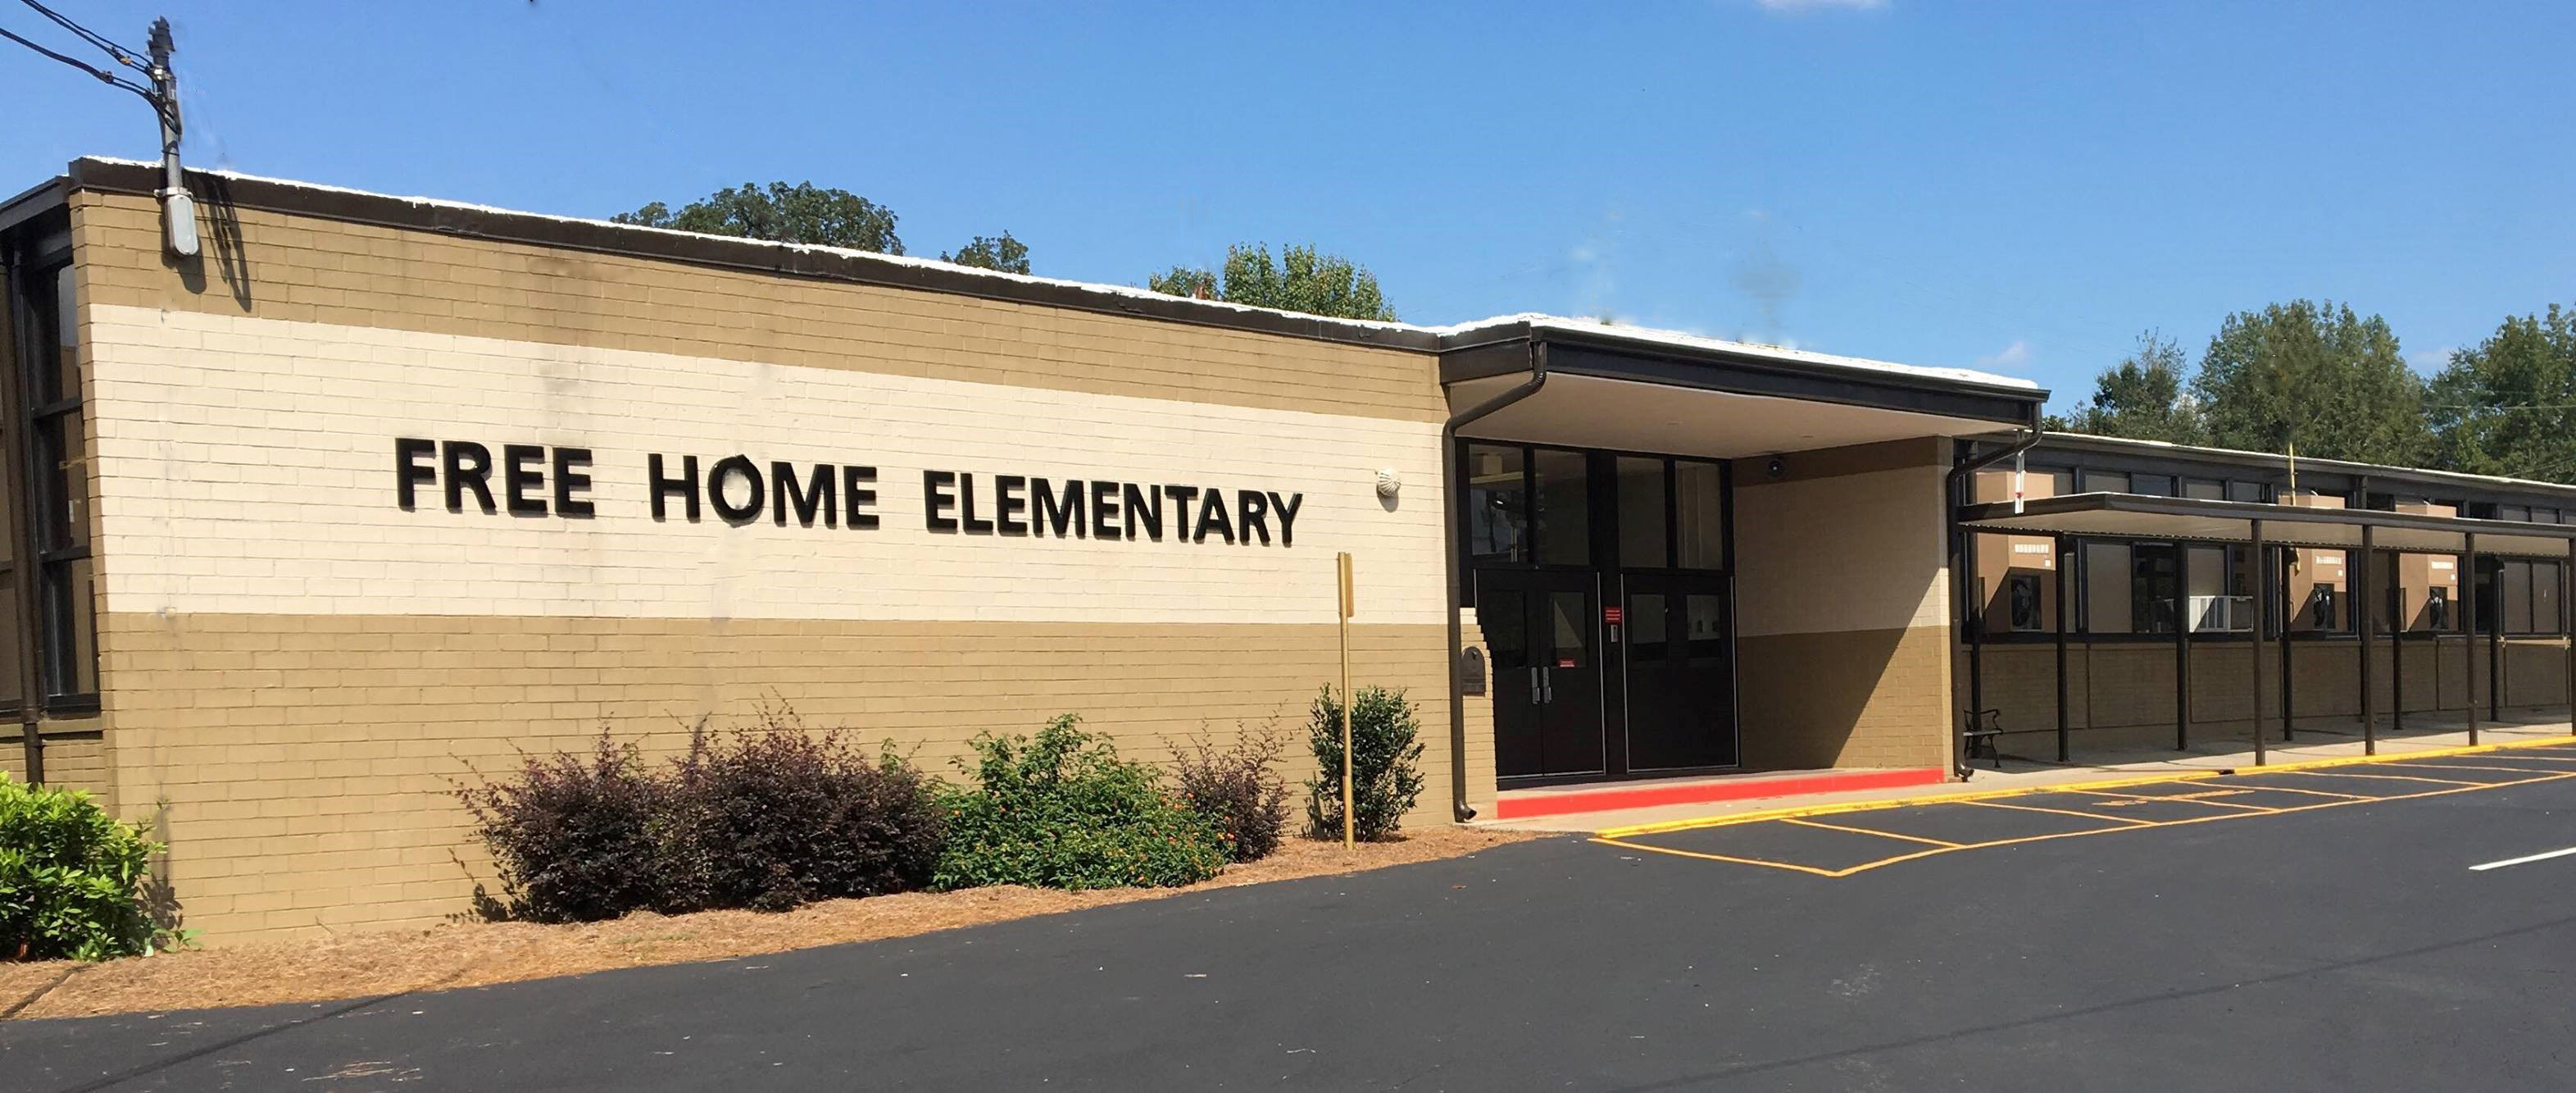 about free home elementary school free home elementary school